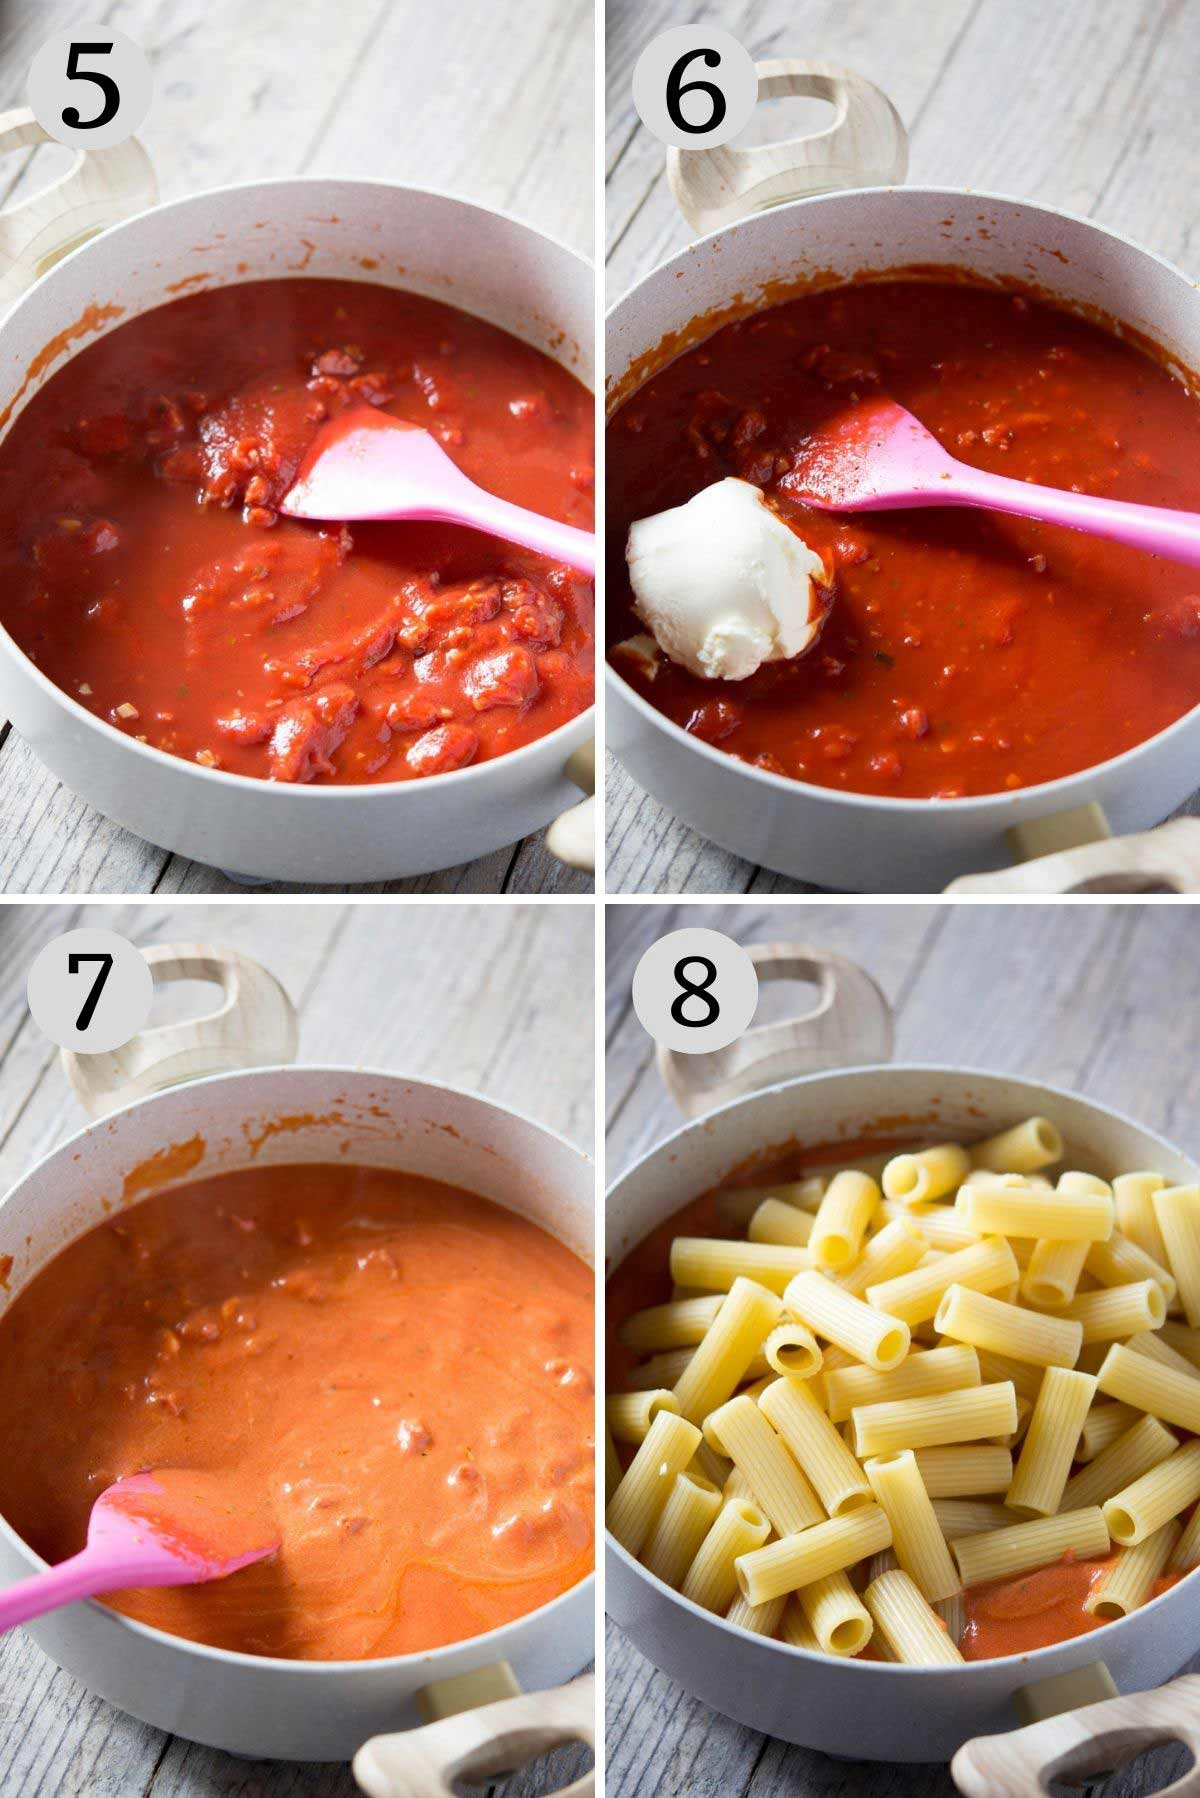 Step by step photos showing how to make a sausage pasta bake